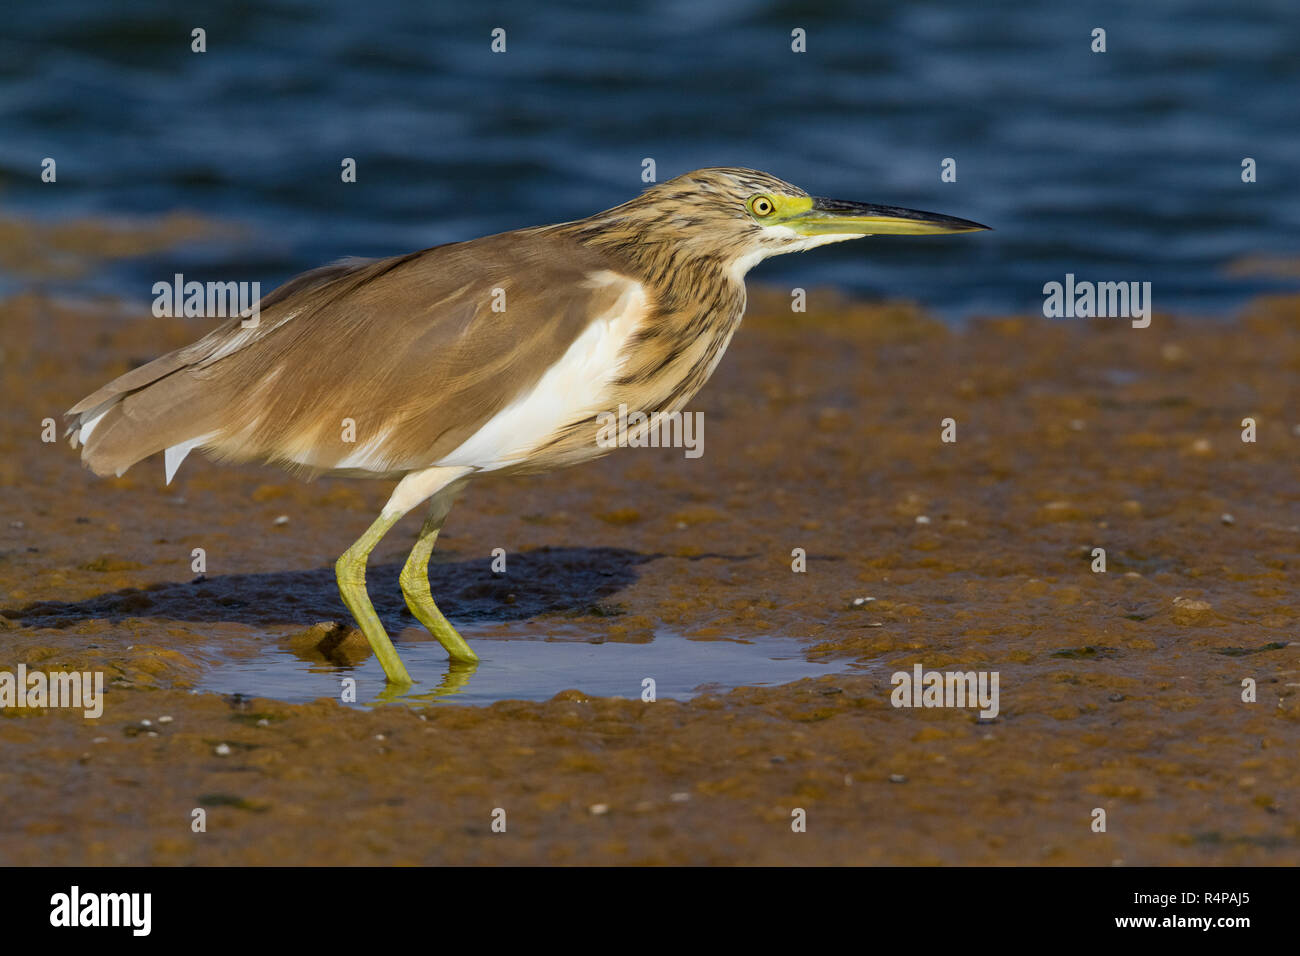 Squacco Heron (Ardeola ralloides), individual standing in a pond in Oman Stock Photo